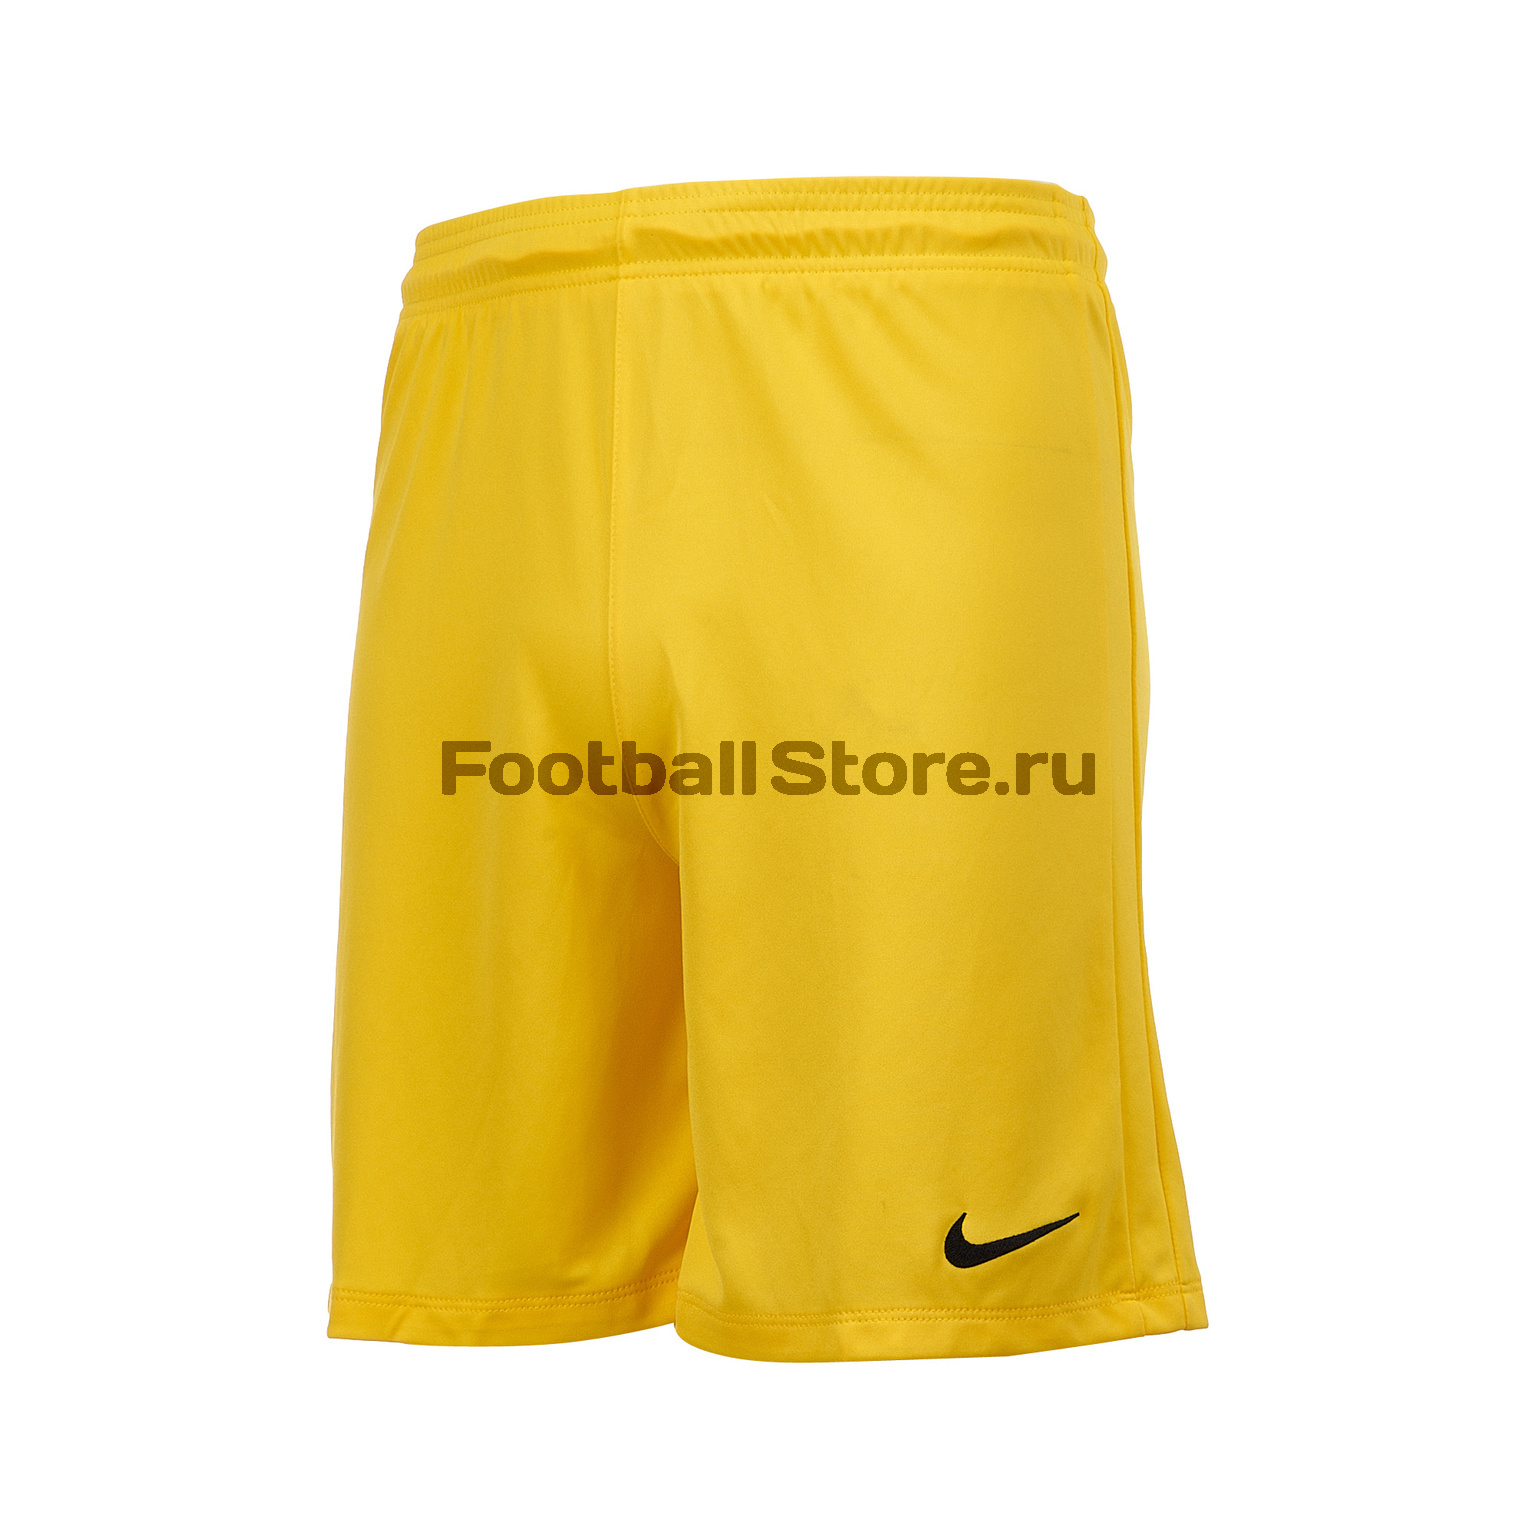 Шорты игровые Nike YTH League Knit Short NB 725990-719